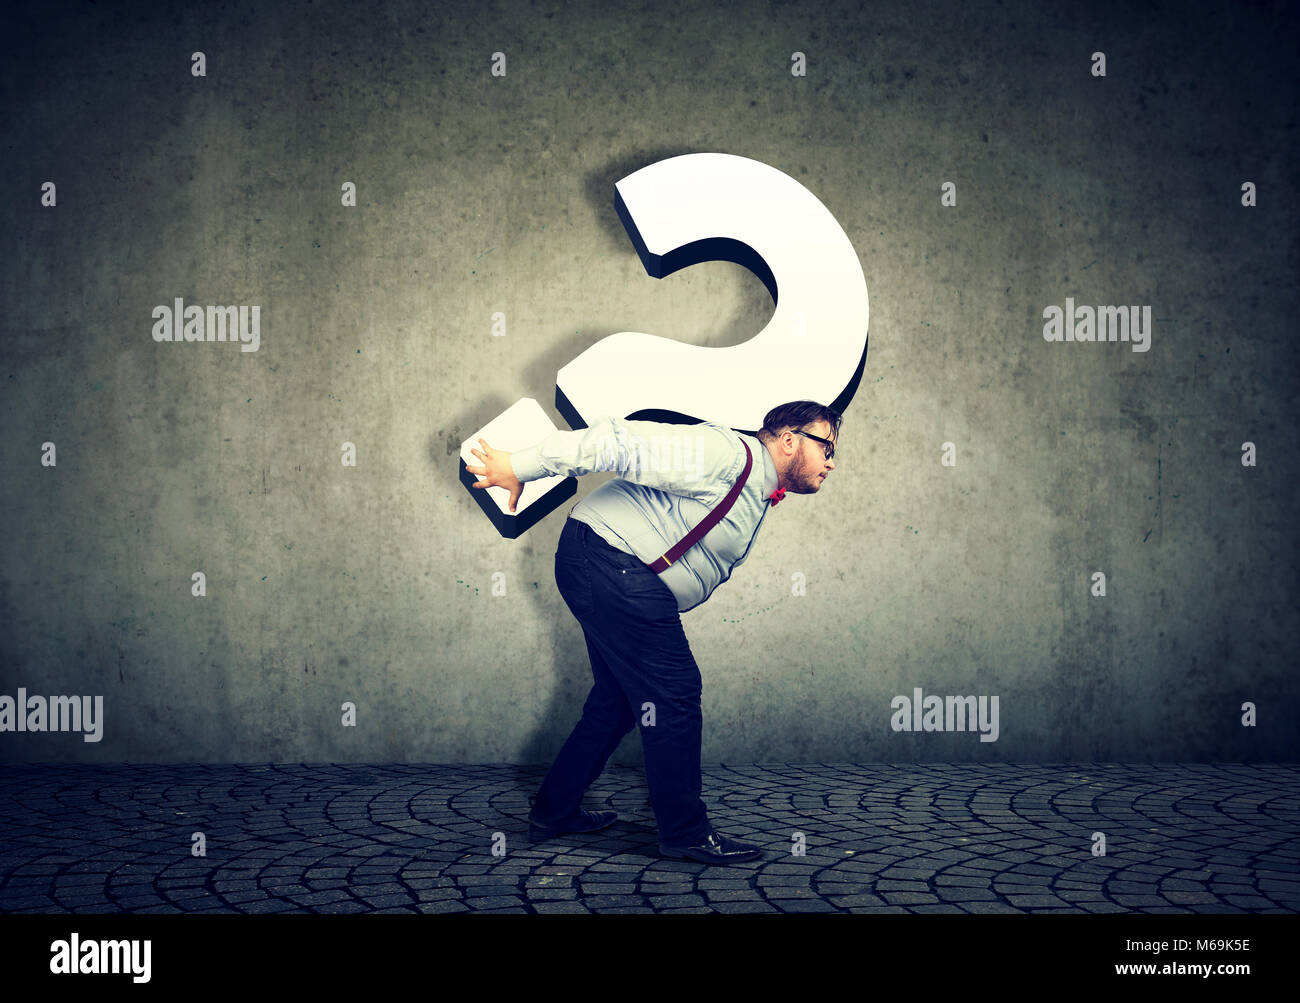 Overworked business man carrying big question mark - Stock Image